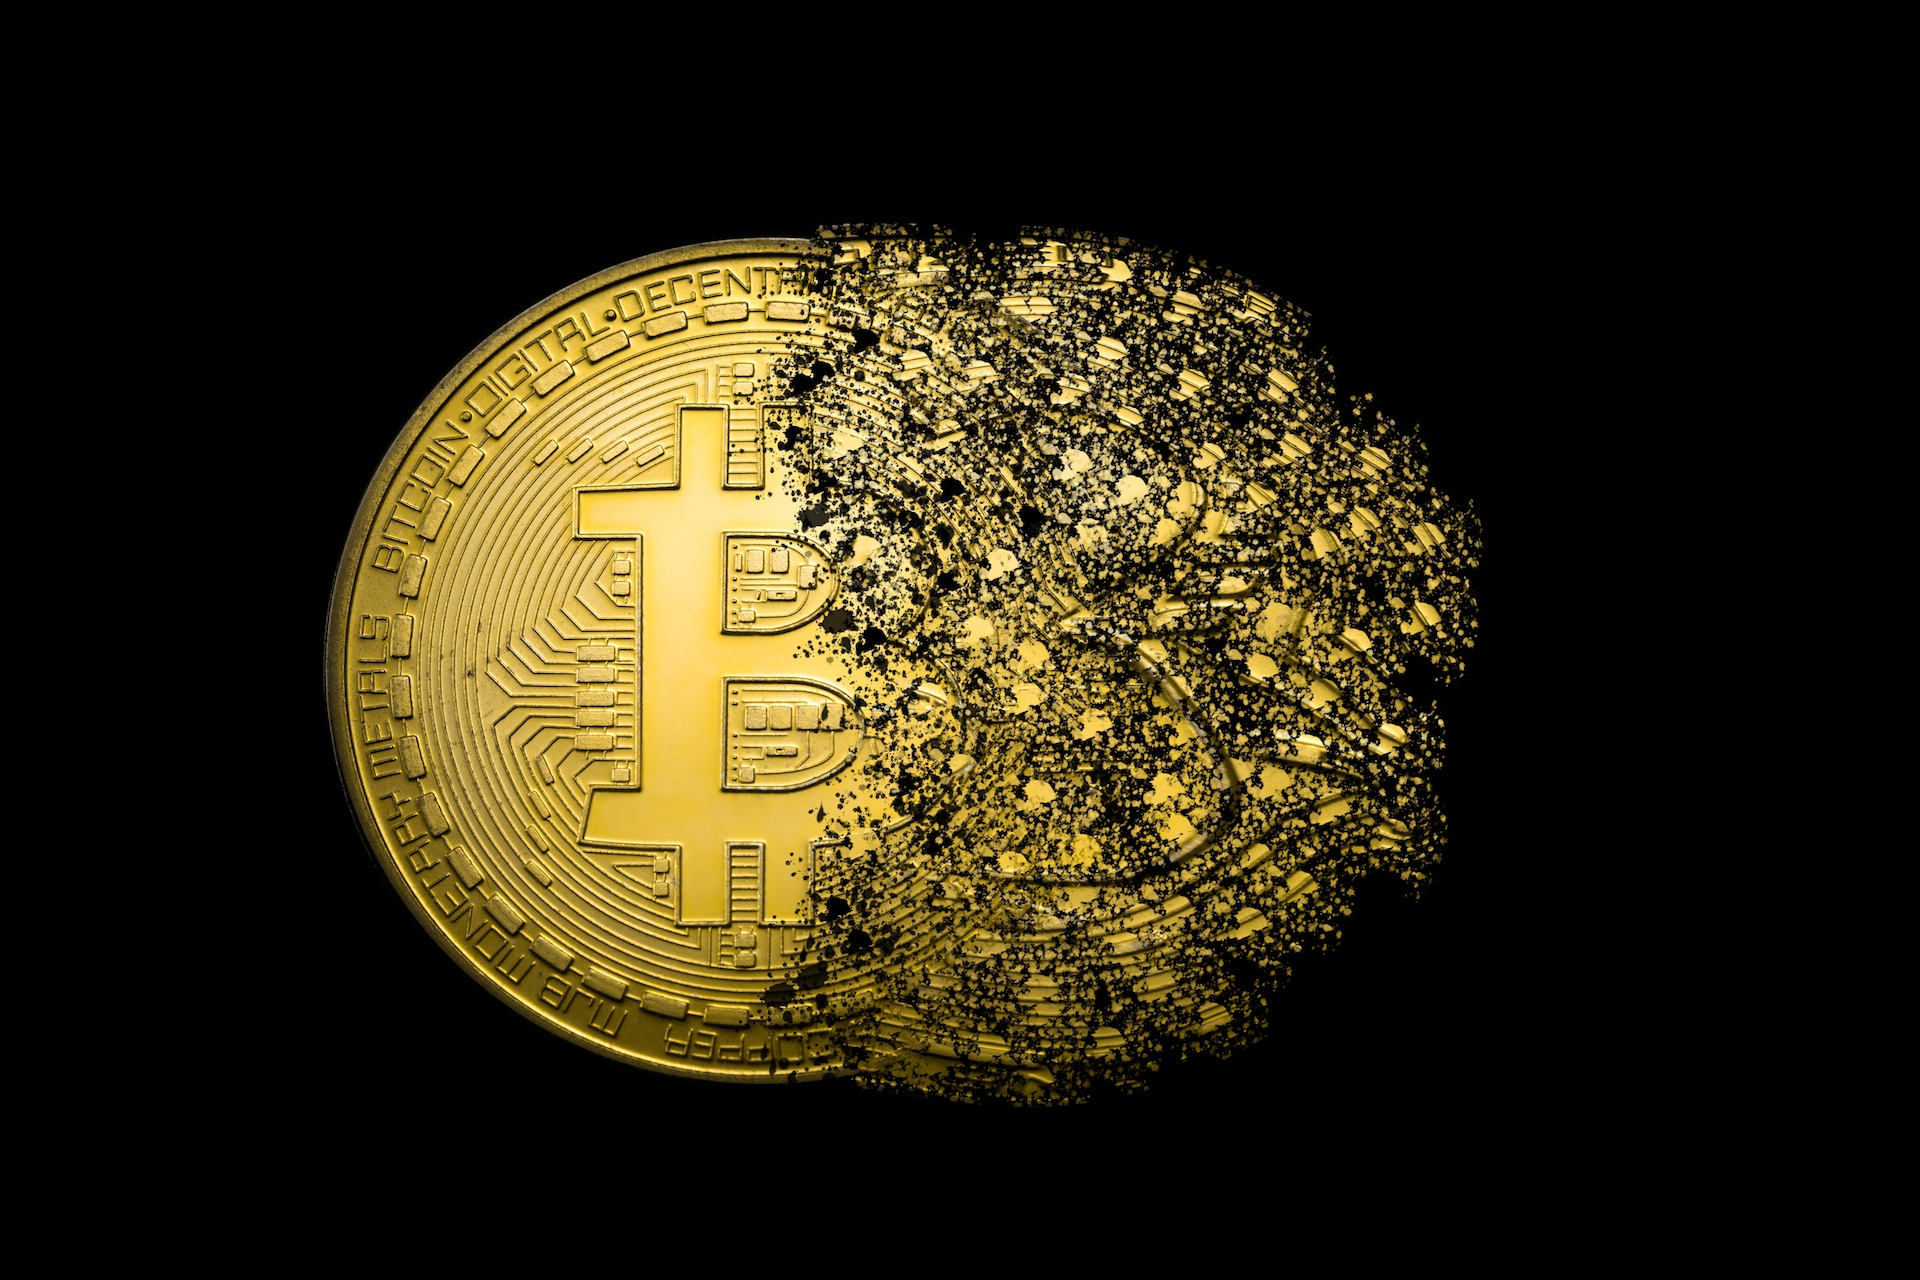 General 1920x1280 Bitcoin gold money